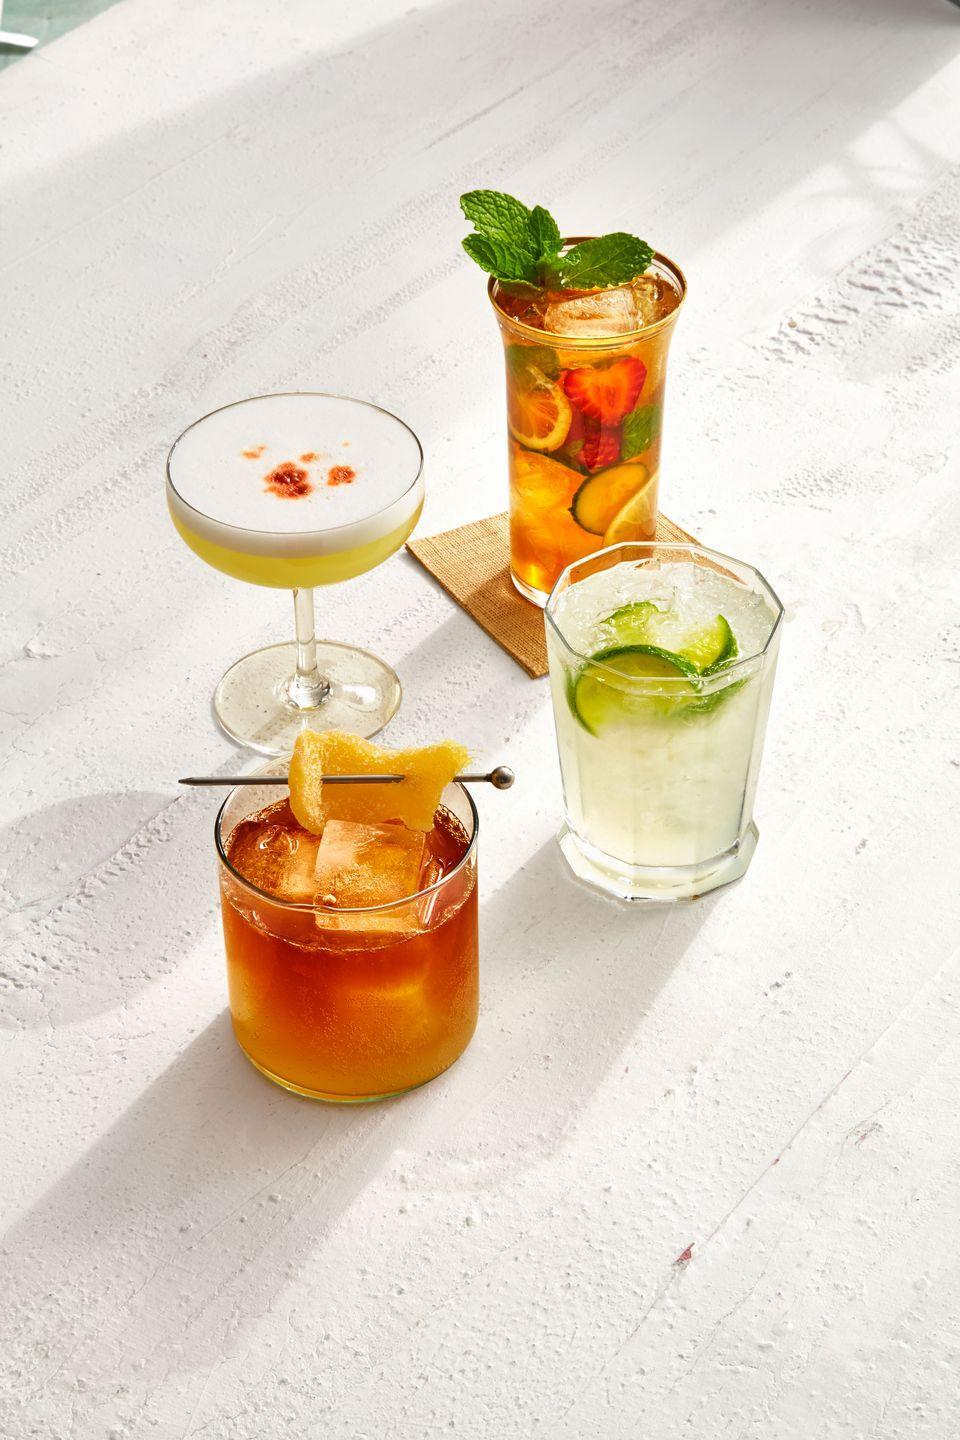 """<p>Pimm's No. 1 is a gin-based aperitif that was invented in the 1820s in England by oyster-bar owner James Pimm. Its secret formula is a refreshing combination of dry gin, fruit juices and spices. There are other numbered Pimm's aperitifs, each with a different base liquor. </p><p><em><a href=""""https://www.goodhousekeeping.com/food-recipes/a7083/pimms-cup-recipe/"""" rel=""""nofollow noopener"""" target=""""_blank"""" data-ylk=""""slk:Get the recipe for Pimm's Cup »"""" class=""""link rapid-noclick-resp"""">Get the recipe for Pimm's Cup »</a></em></p>"""